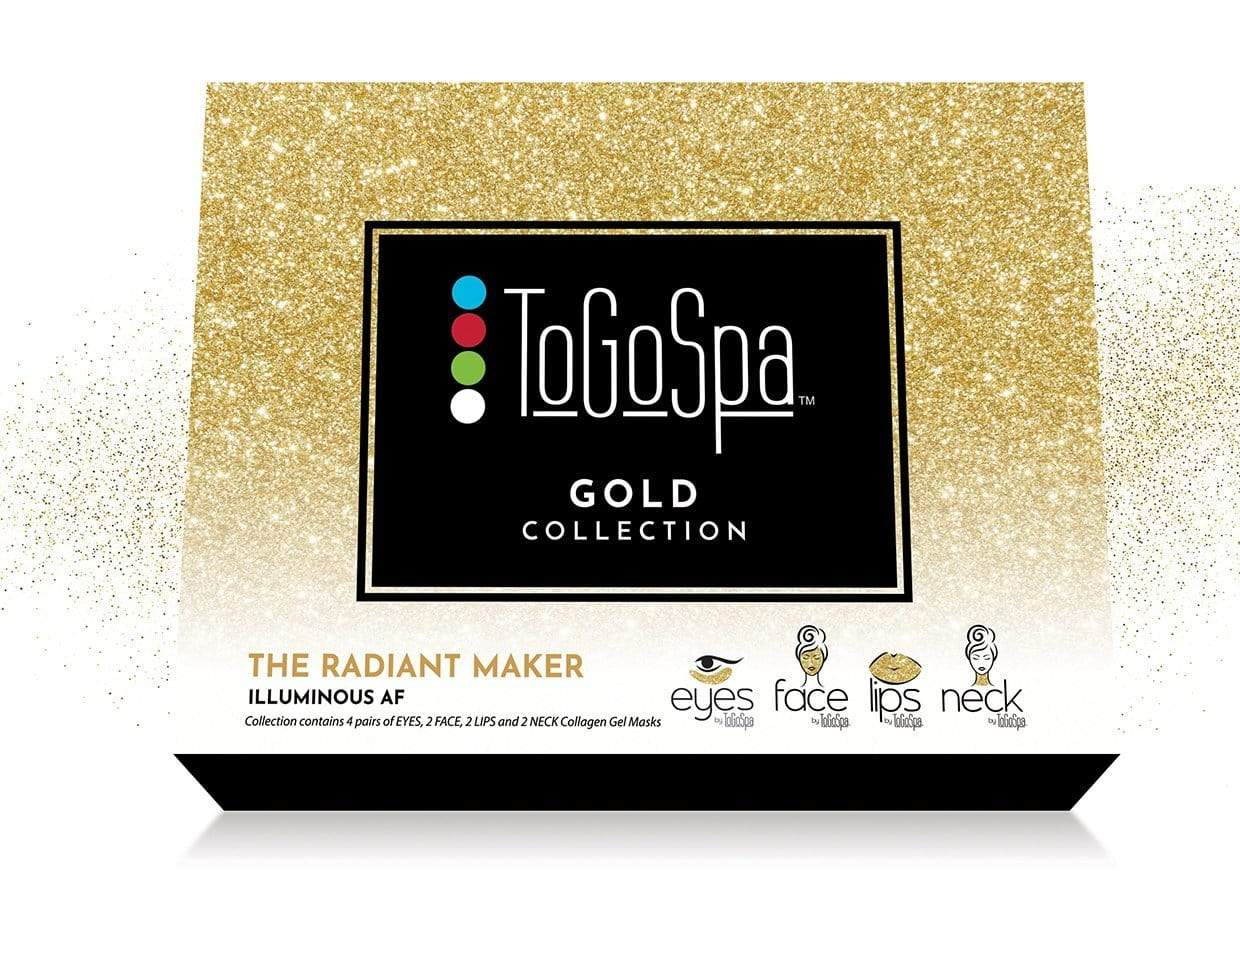 ToGoSpa Gold Collection :: AKA The Radiant Maker